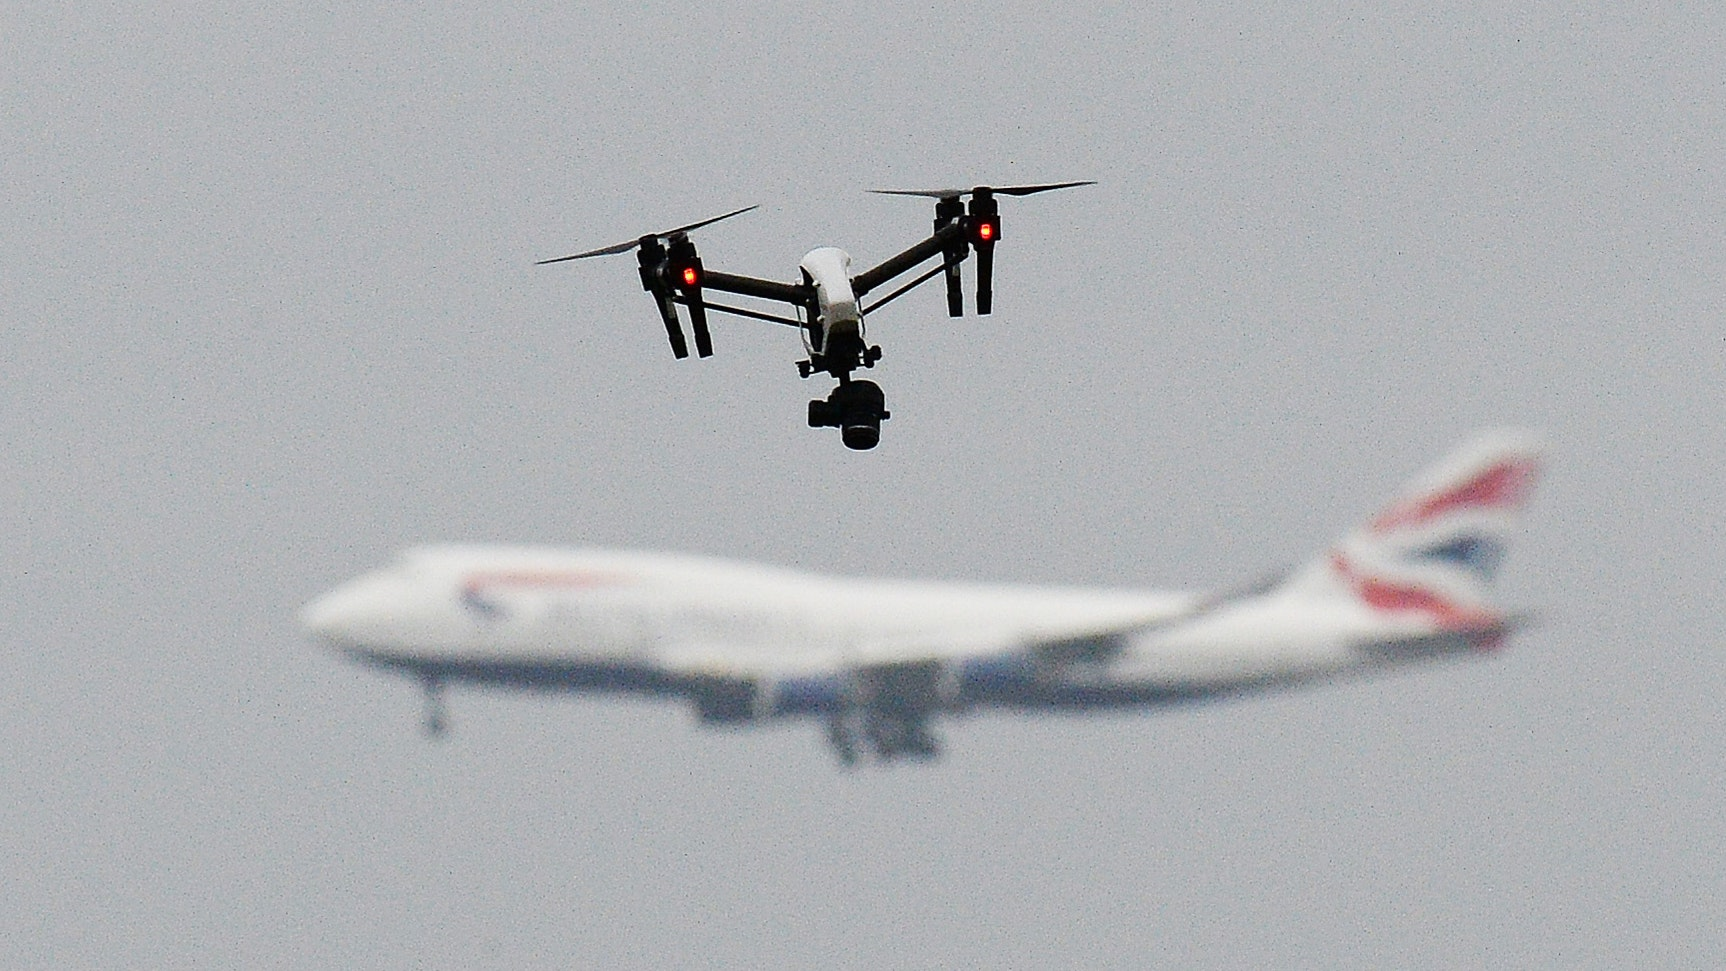 Chaos at Heathrow as 'drone sighting' grounds all planes